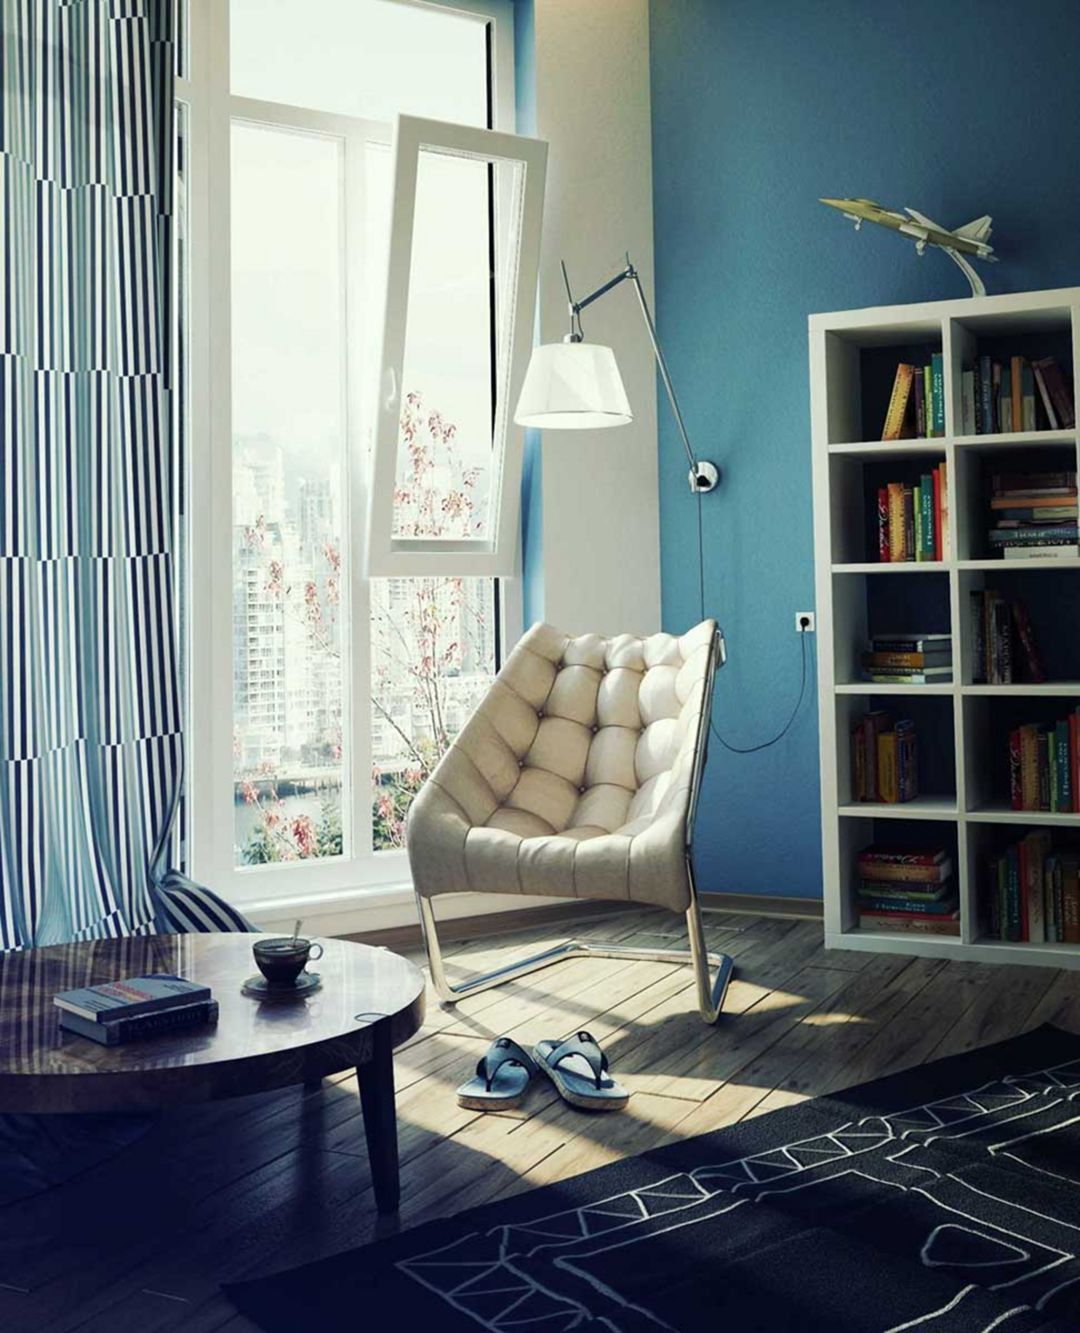 12 Fabulous Reading Chair Design Ideas For Your Inspiration Chairs Loft Lounge Interiors Chairs For Small Spaces